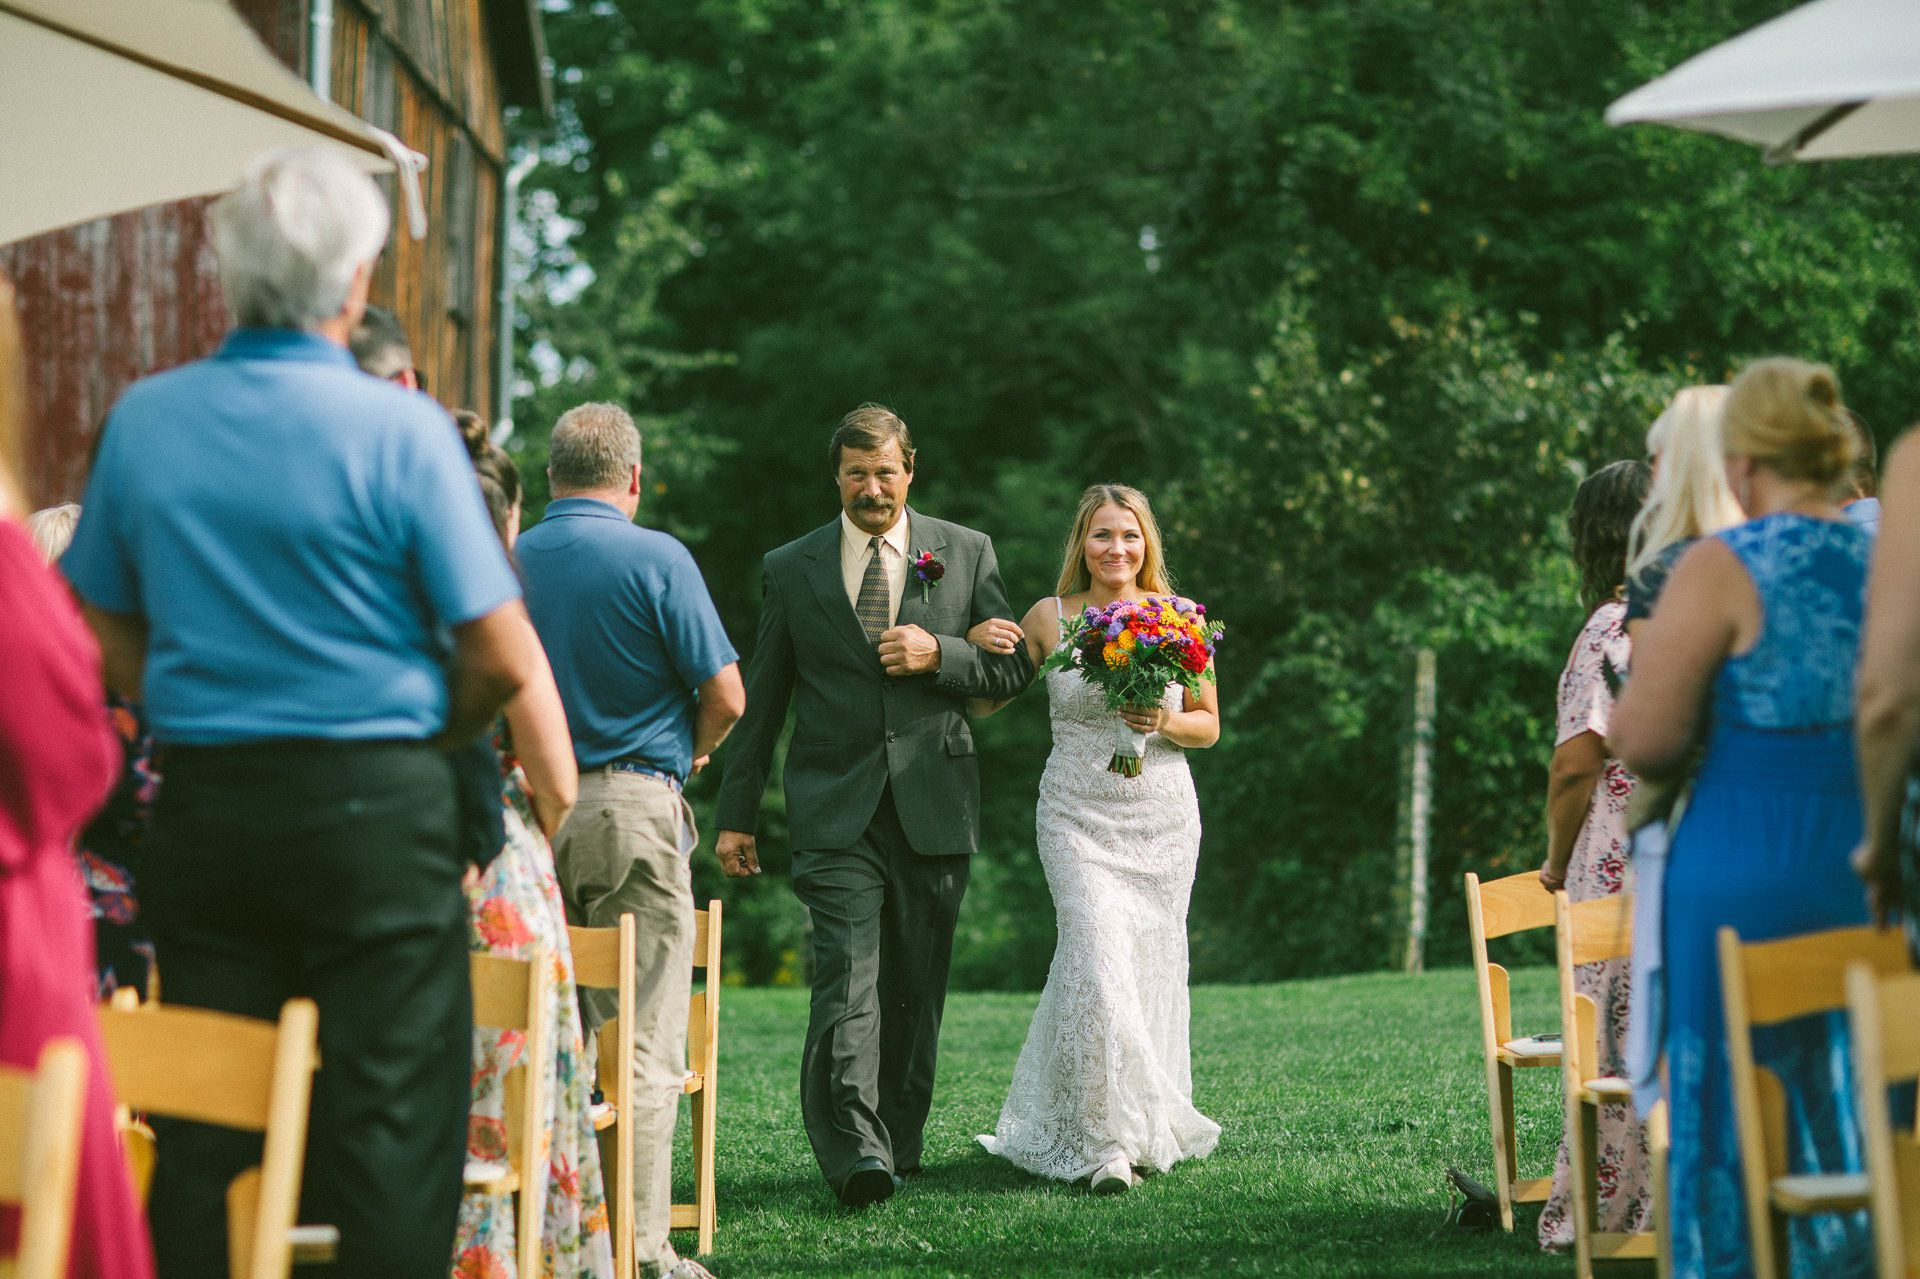 Conrad Botzum Farmstead Wedding Photographer 00038.JPG